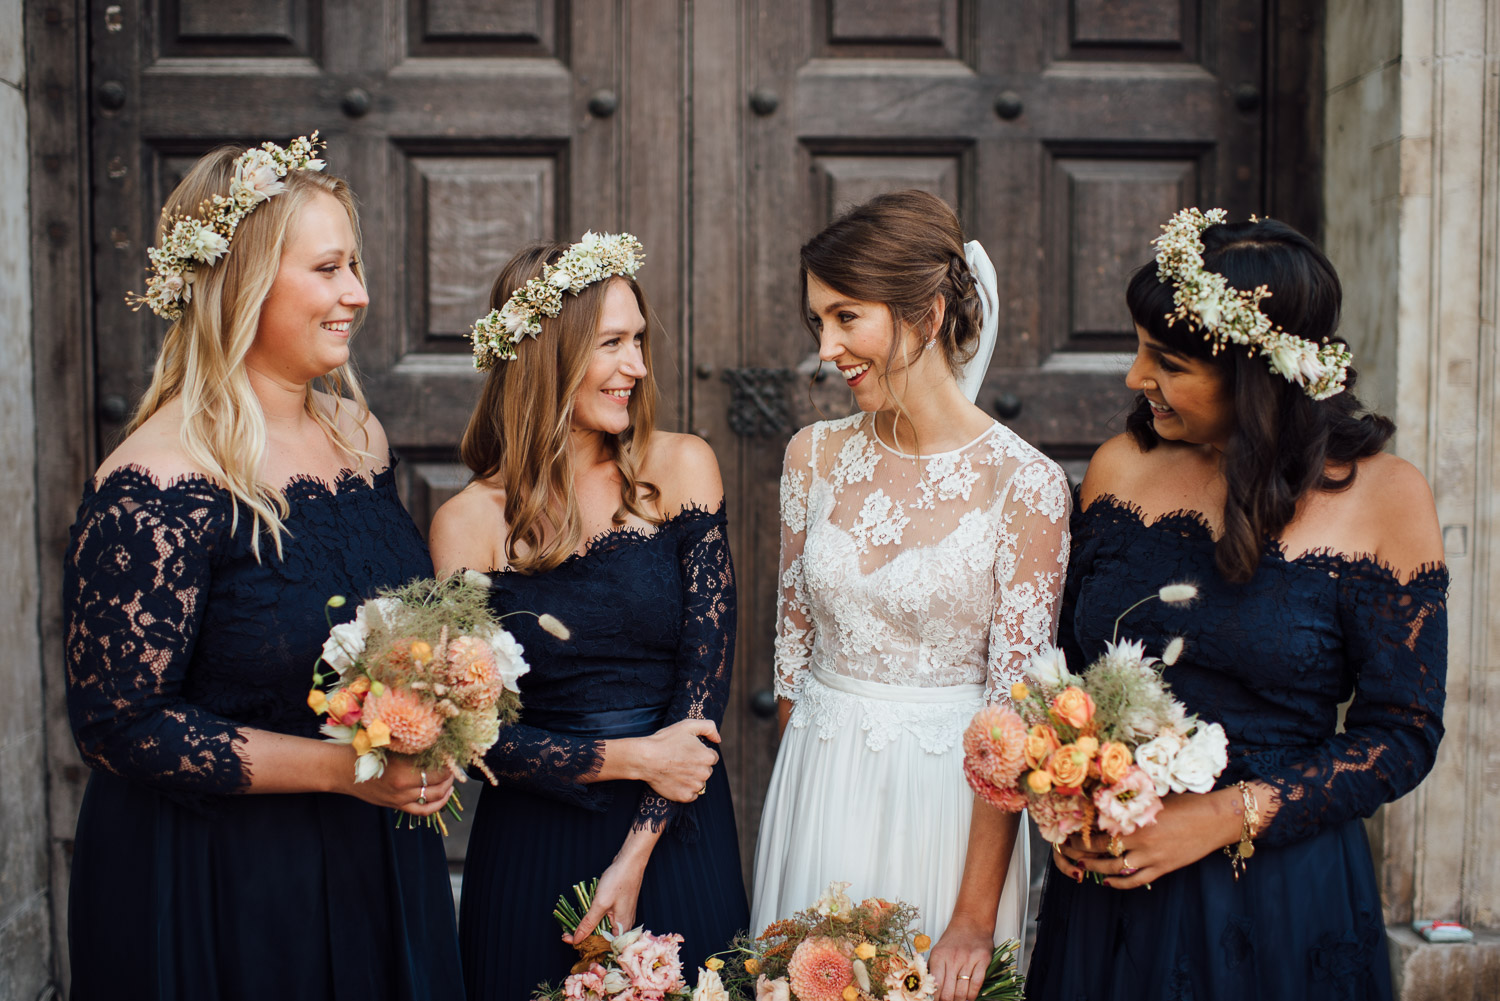 bride and bridesmaids wilton's music hall wedding by london wedding photographer the shannons photography